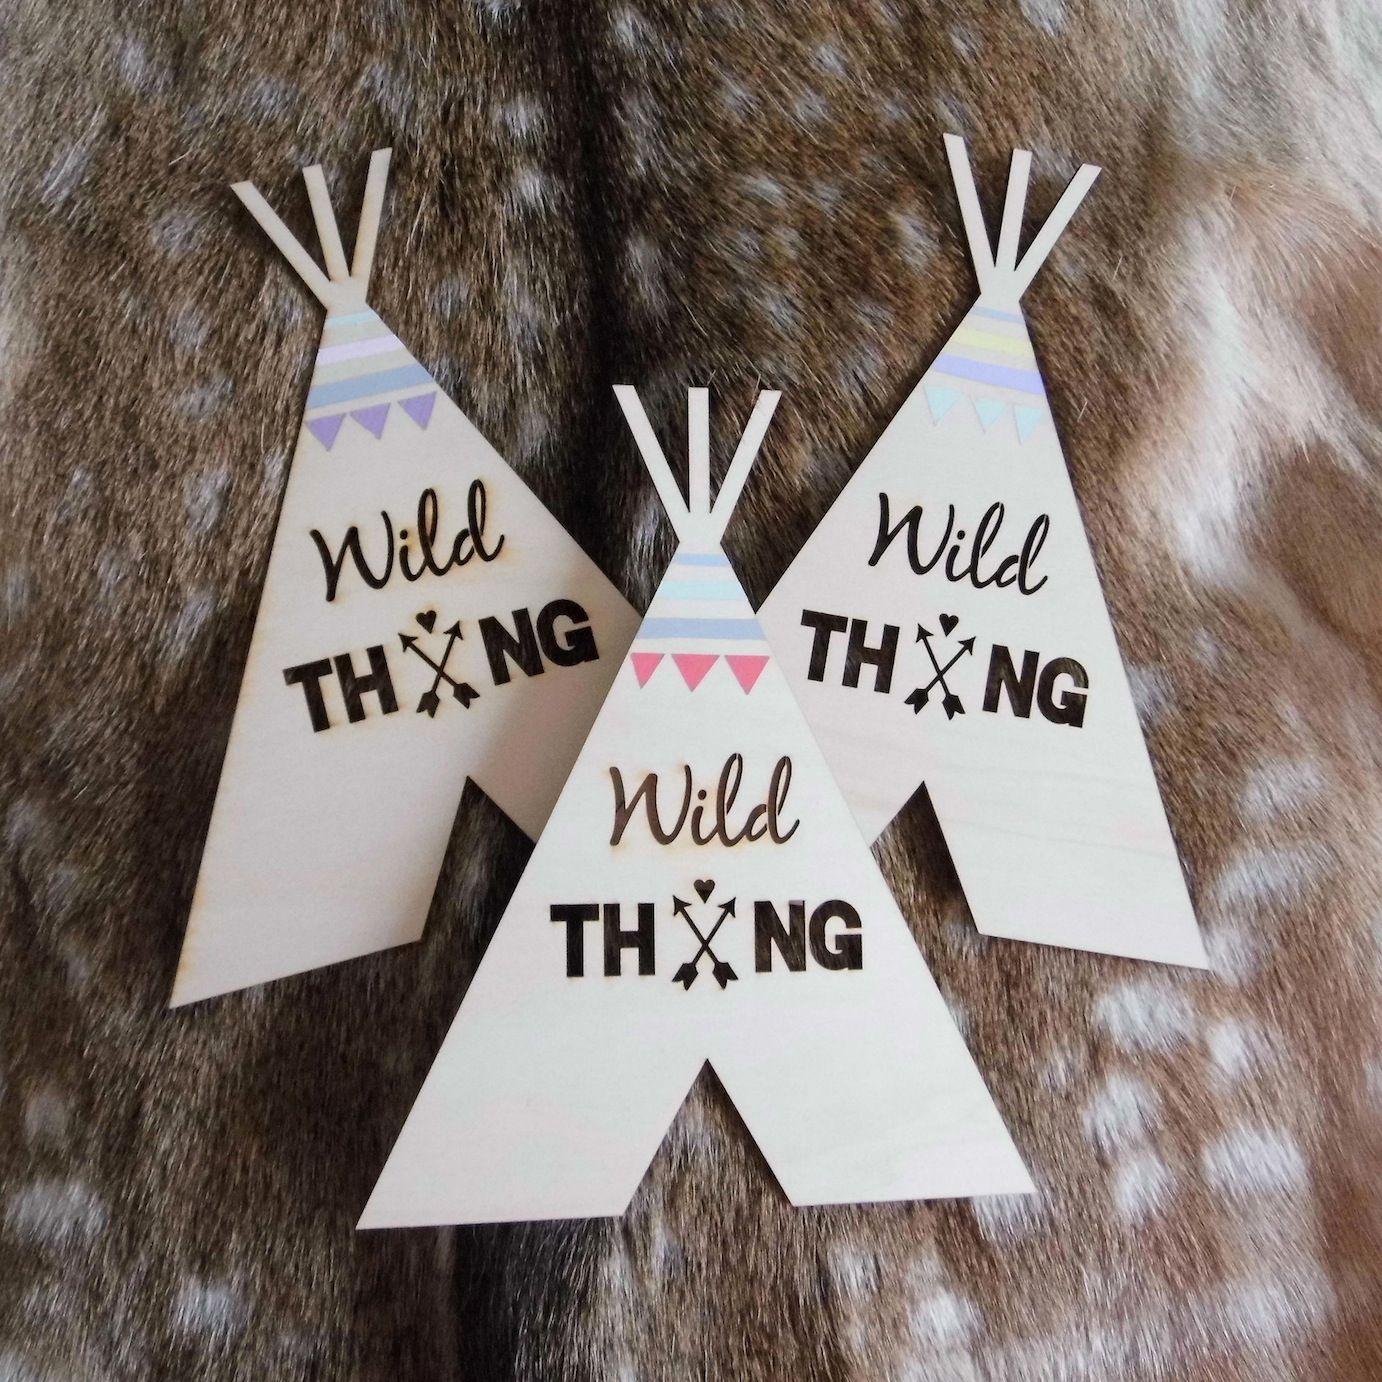 Awesome Holzzelte Wanddeko Kinderzimmer Wild Thing Wooden tipis Wild thing wall art children us